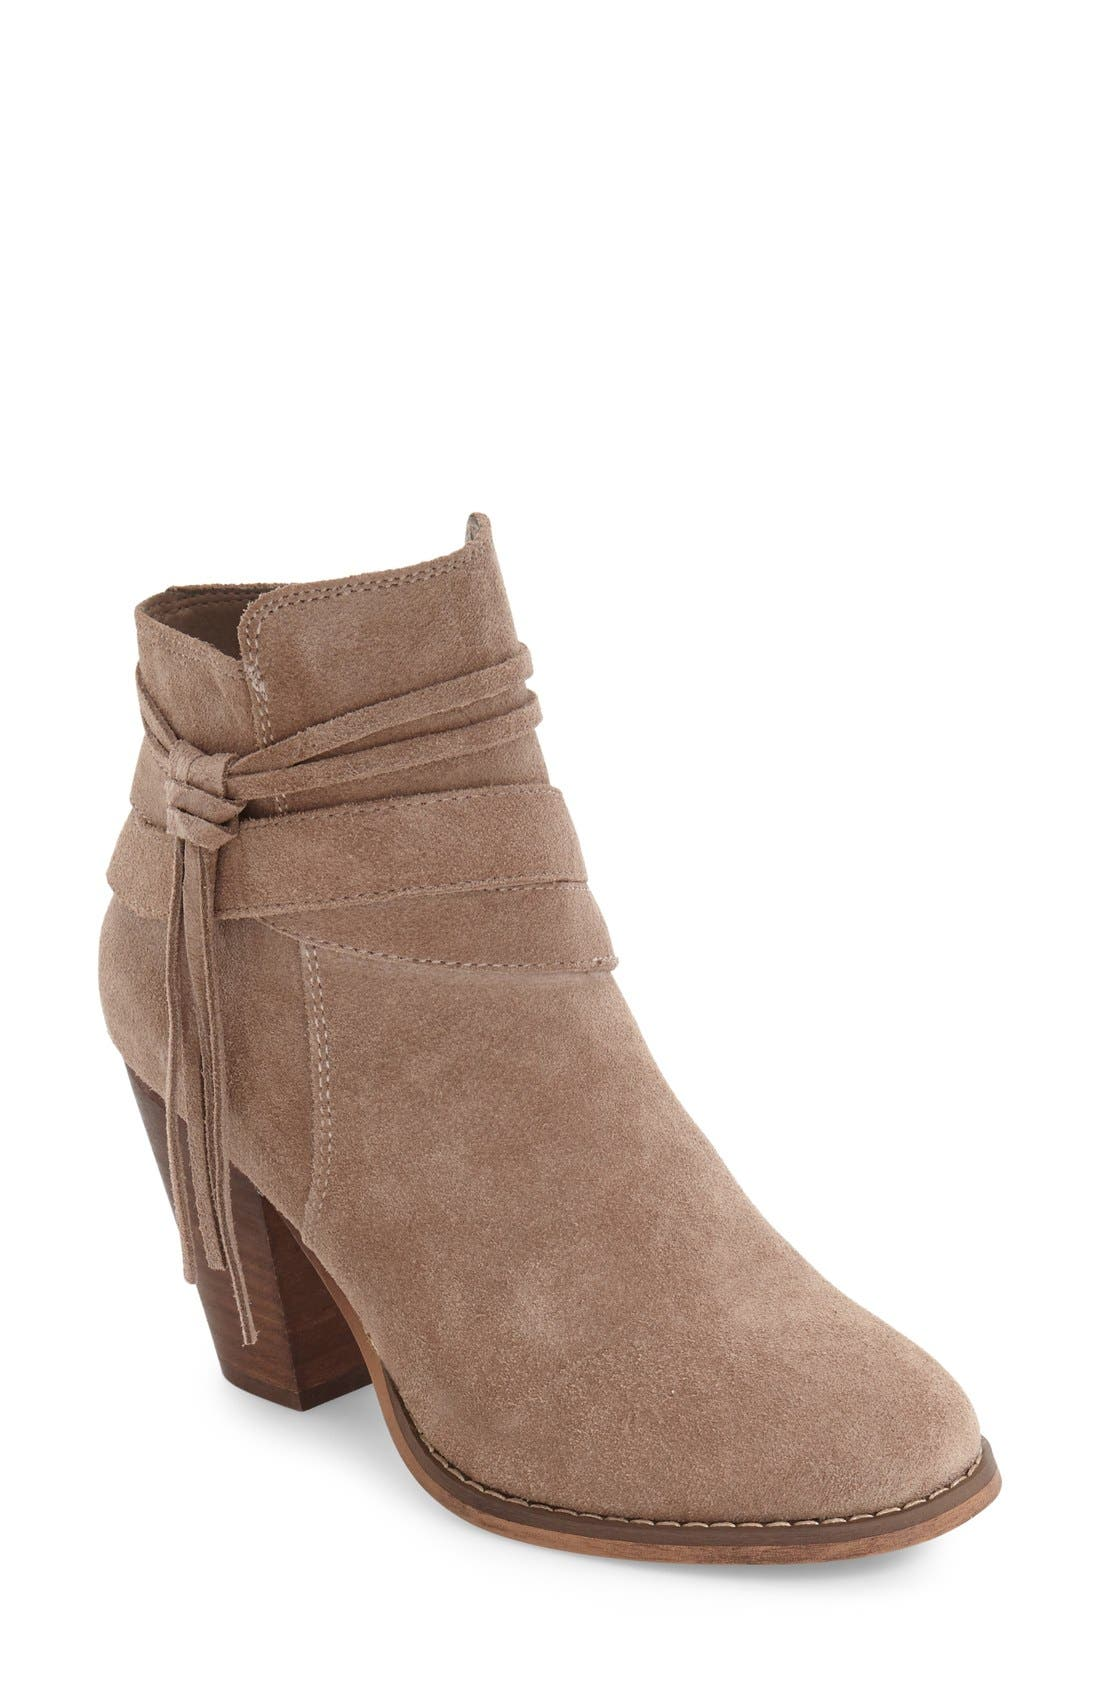 Rumi Bootie,                         Main,                         color, Taupe